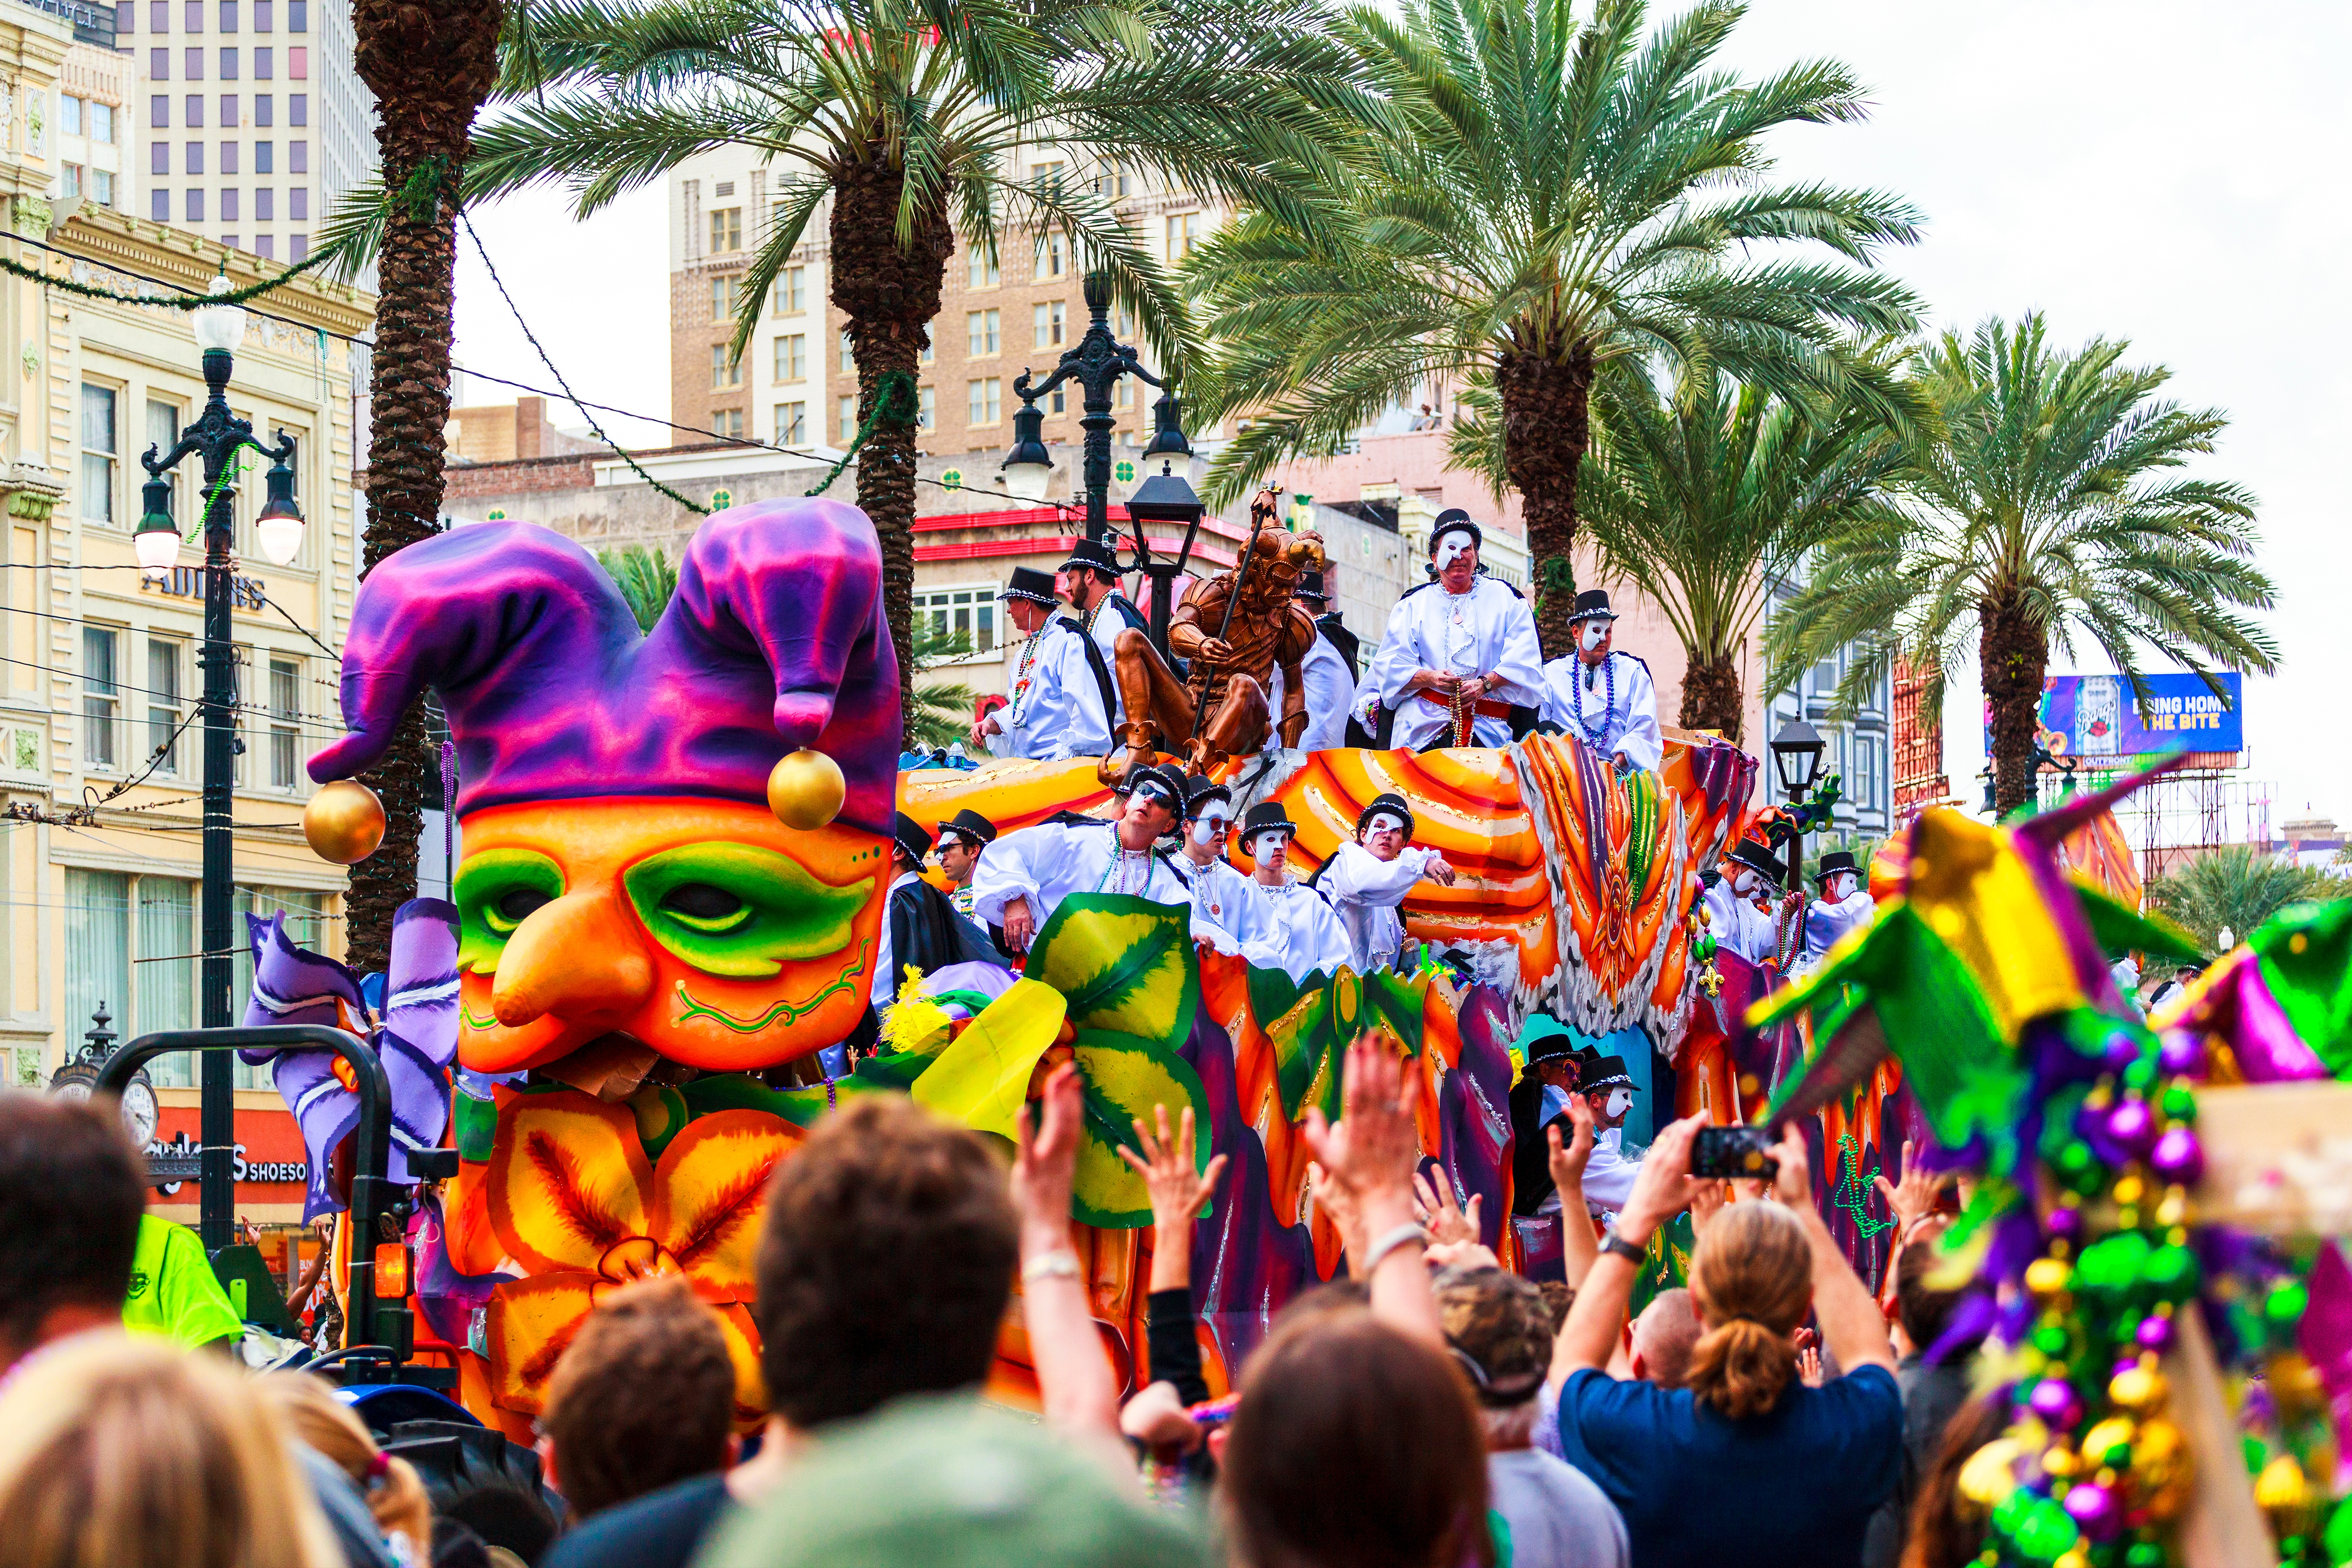 Mardi Gras parade float in New Orleans.